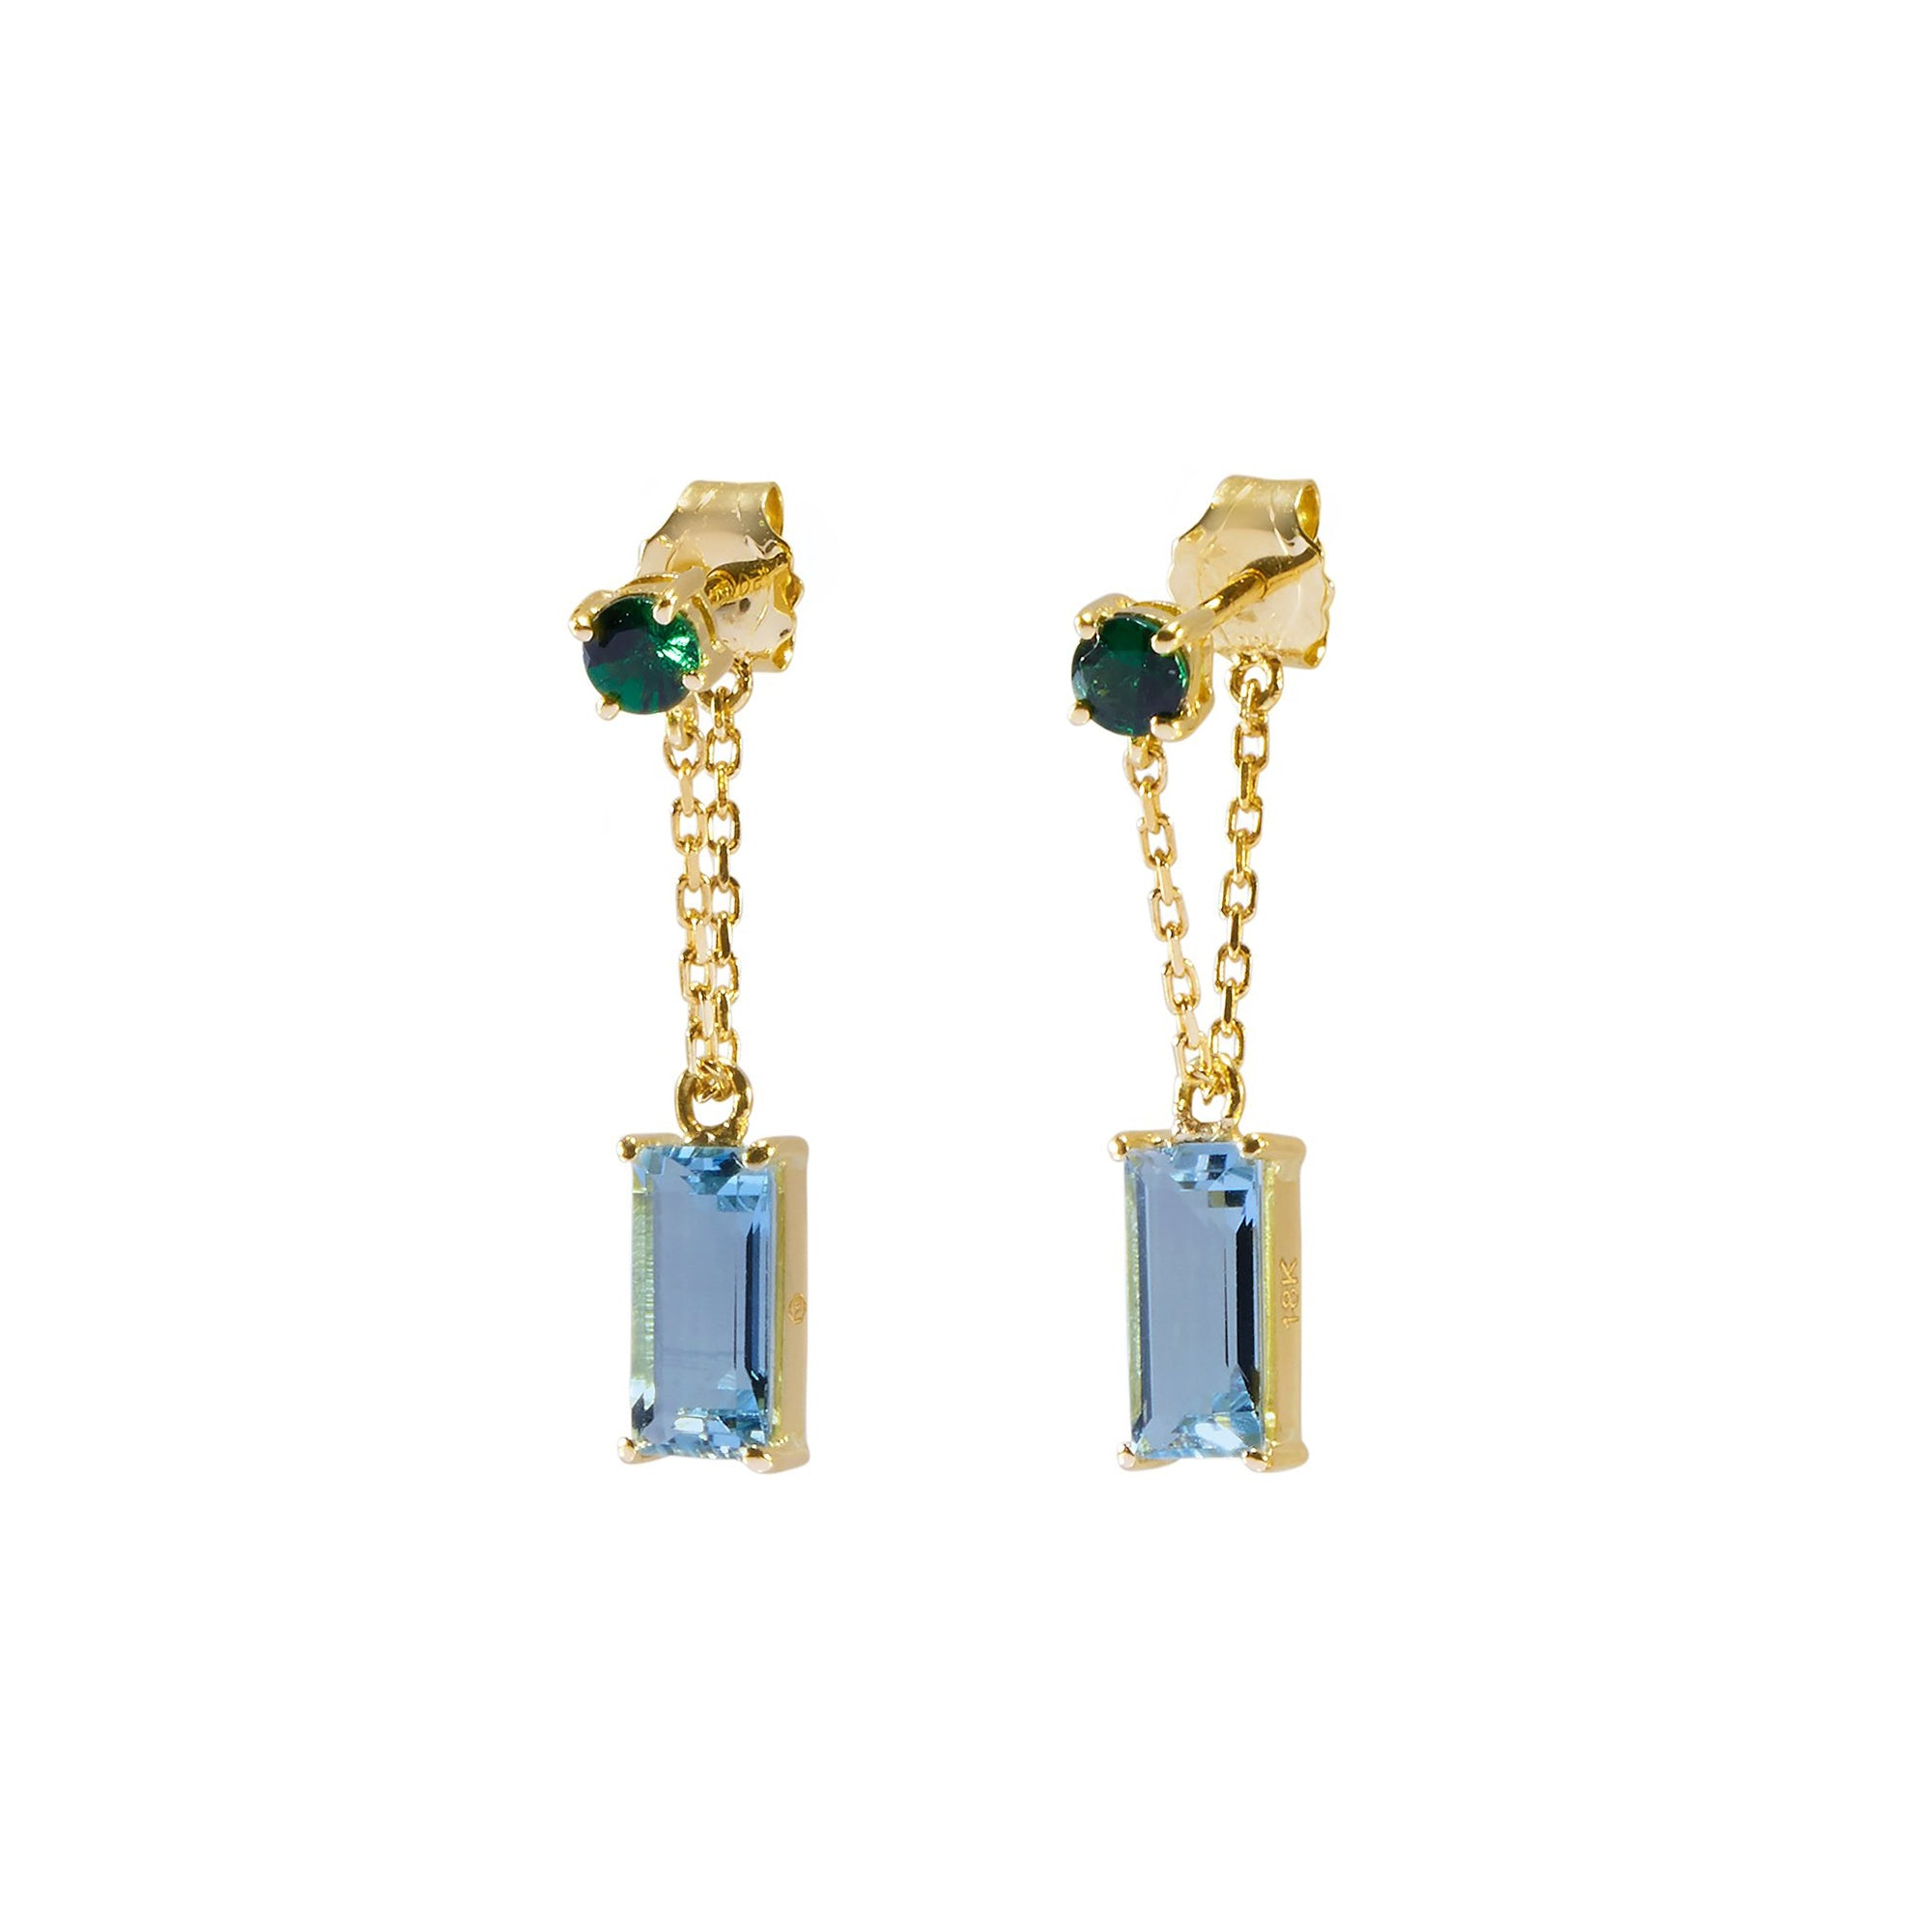 Tsavorite and Aquamarine Earrings by Yi Collection for Broken English Jewelry